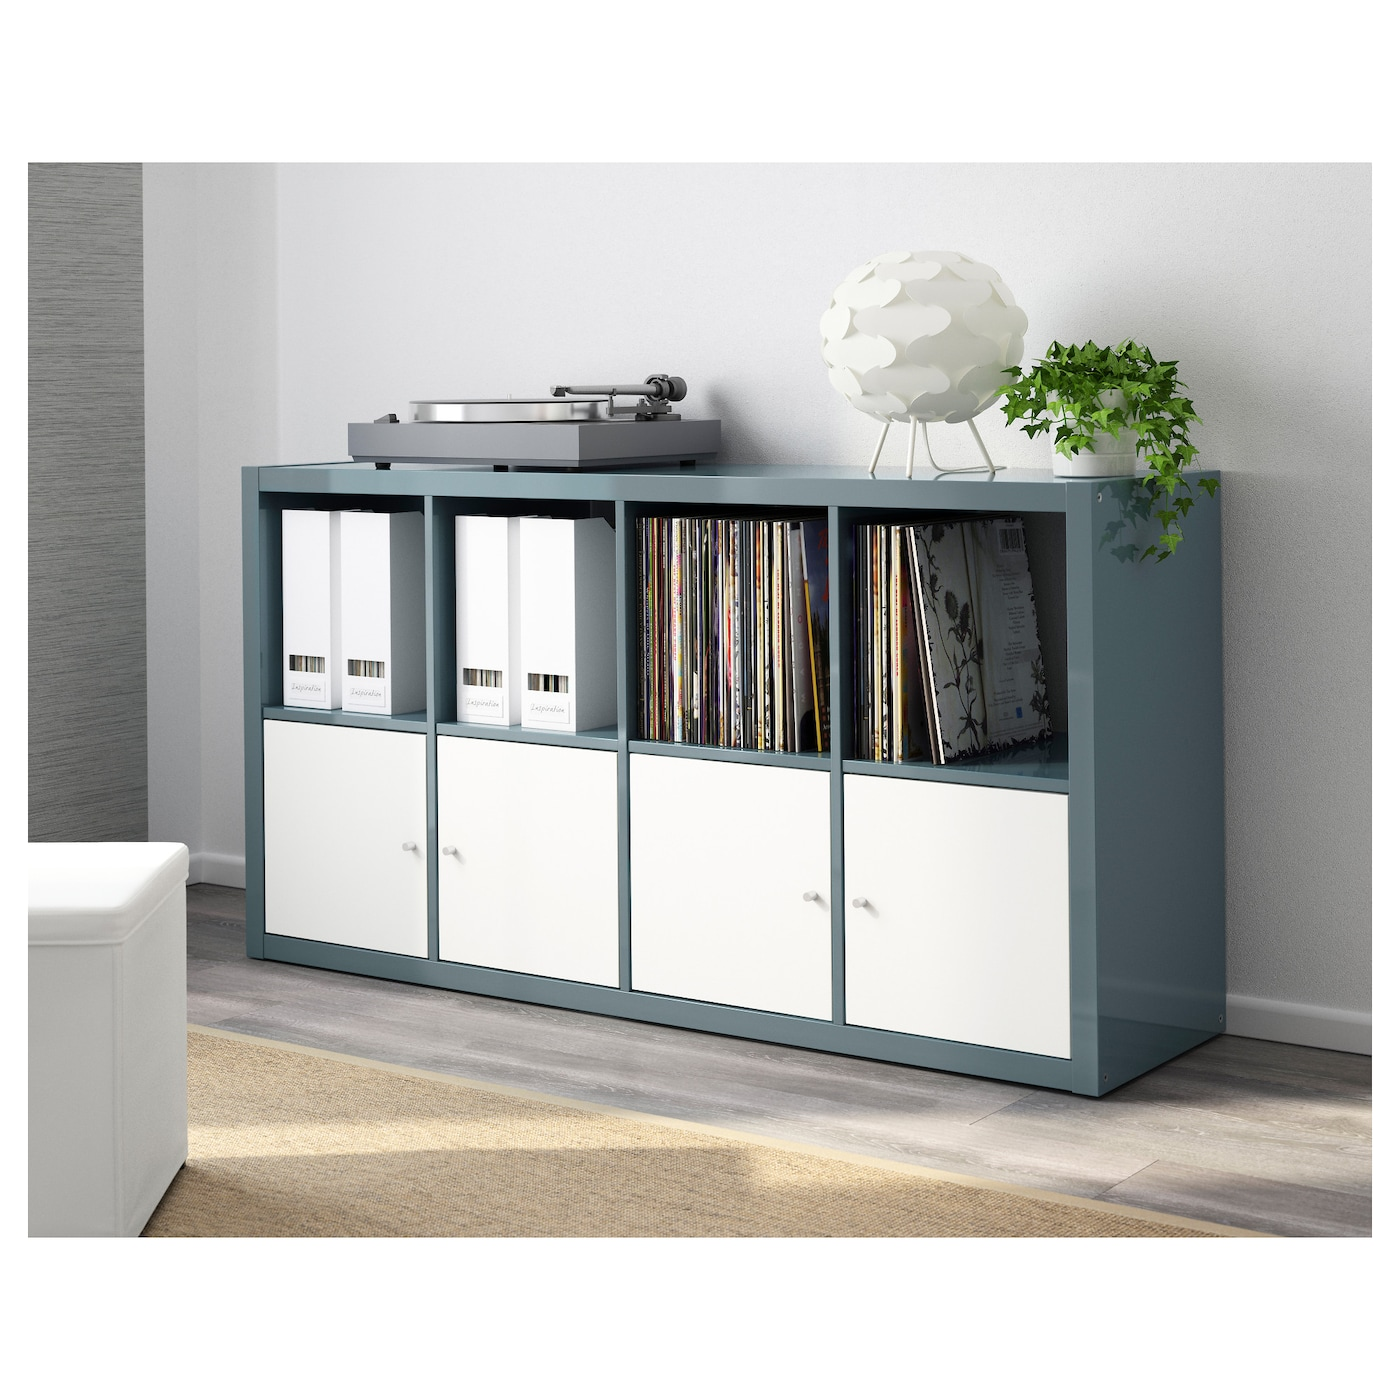 kallax shelving unit high gloss grey turquoise 77 x 147 cm ikea. Black Bedroom Furniture Sets. Home Design Ideas